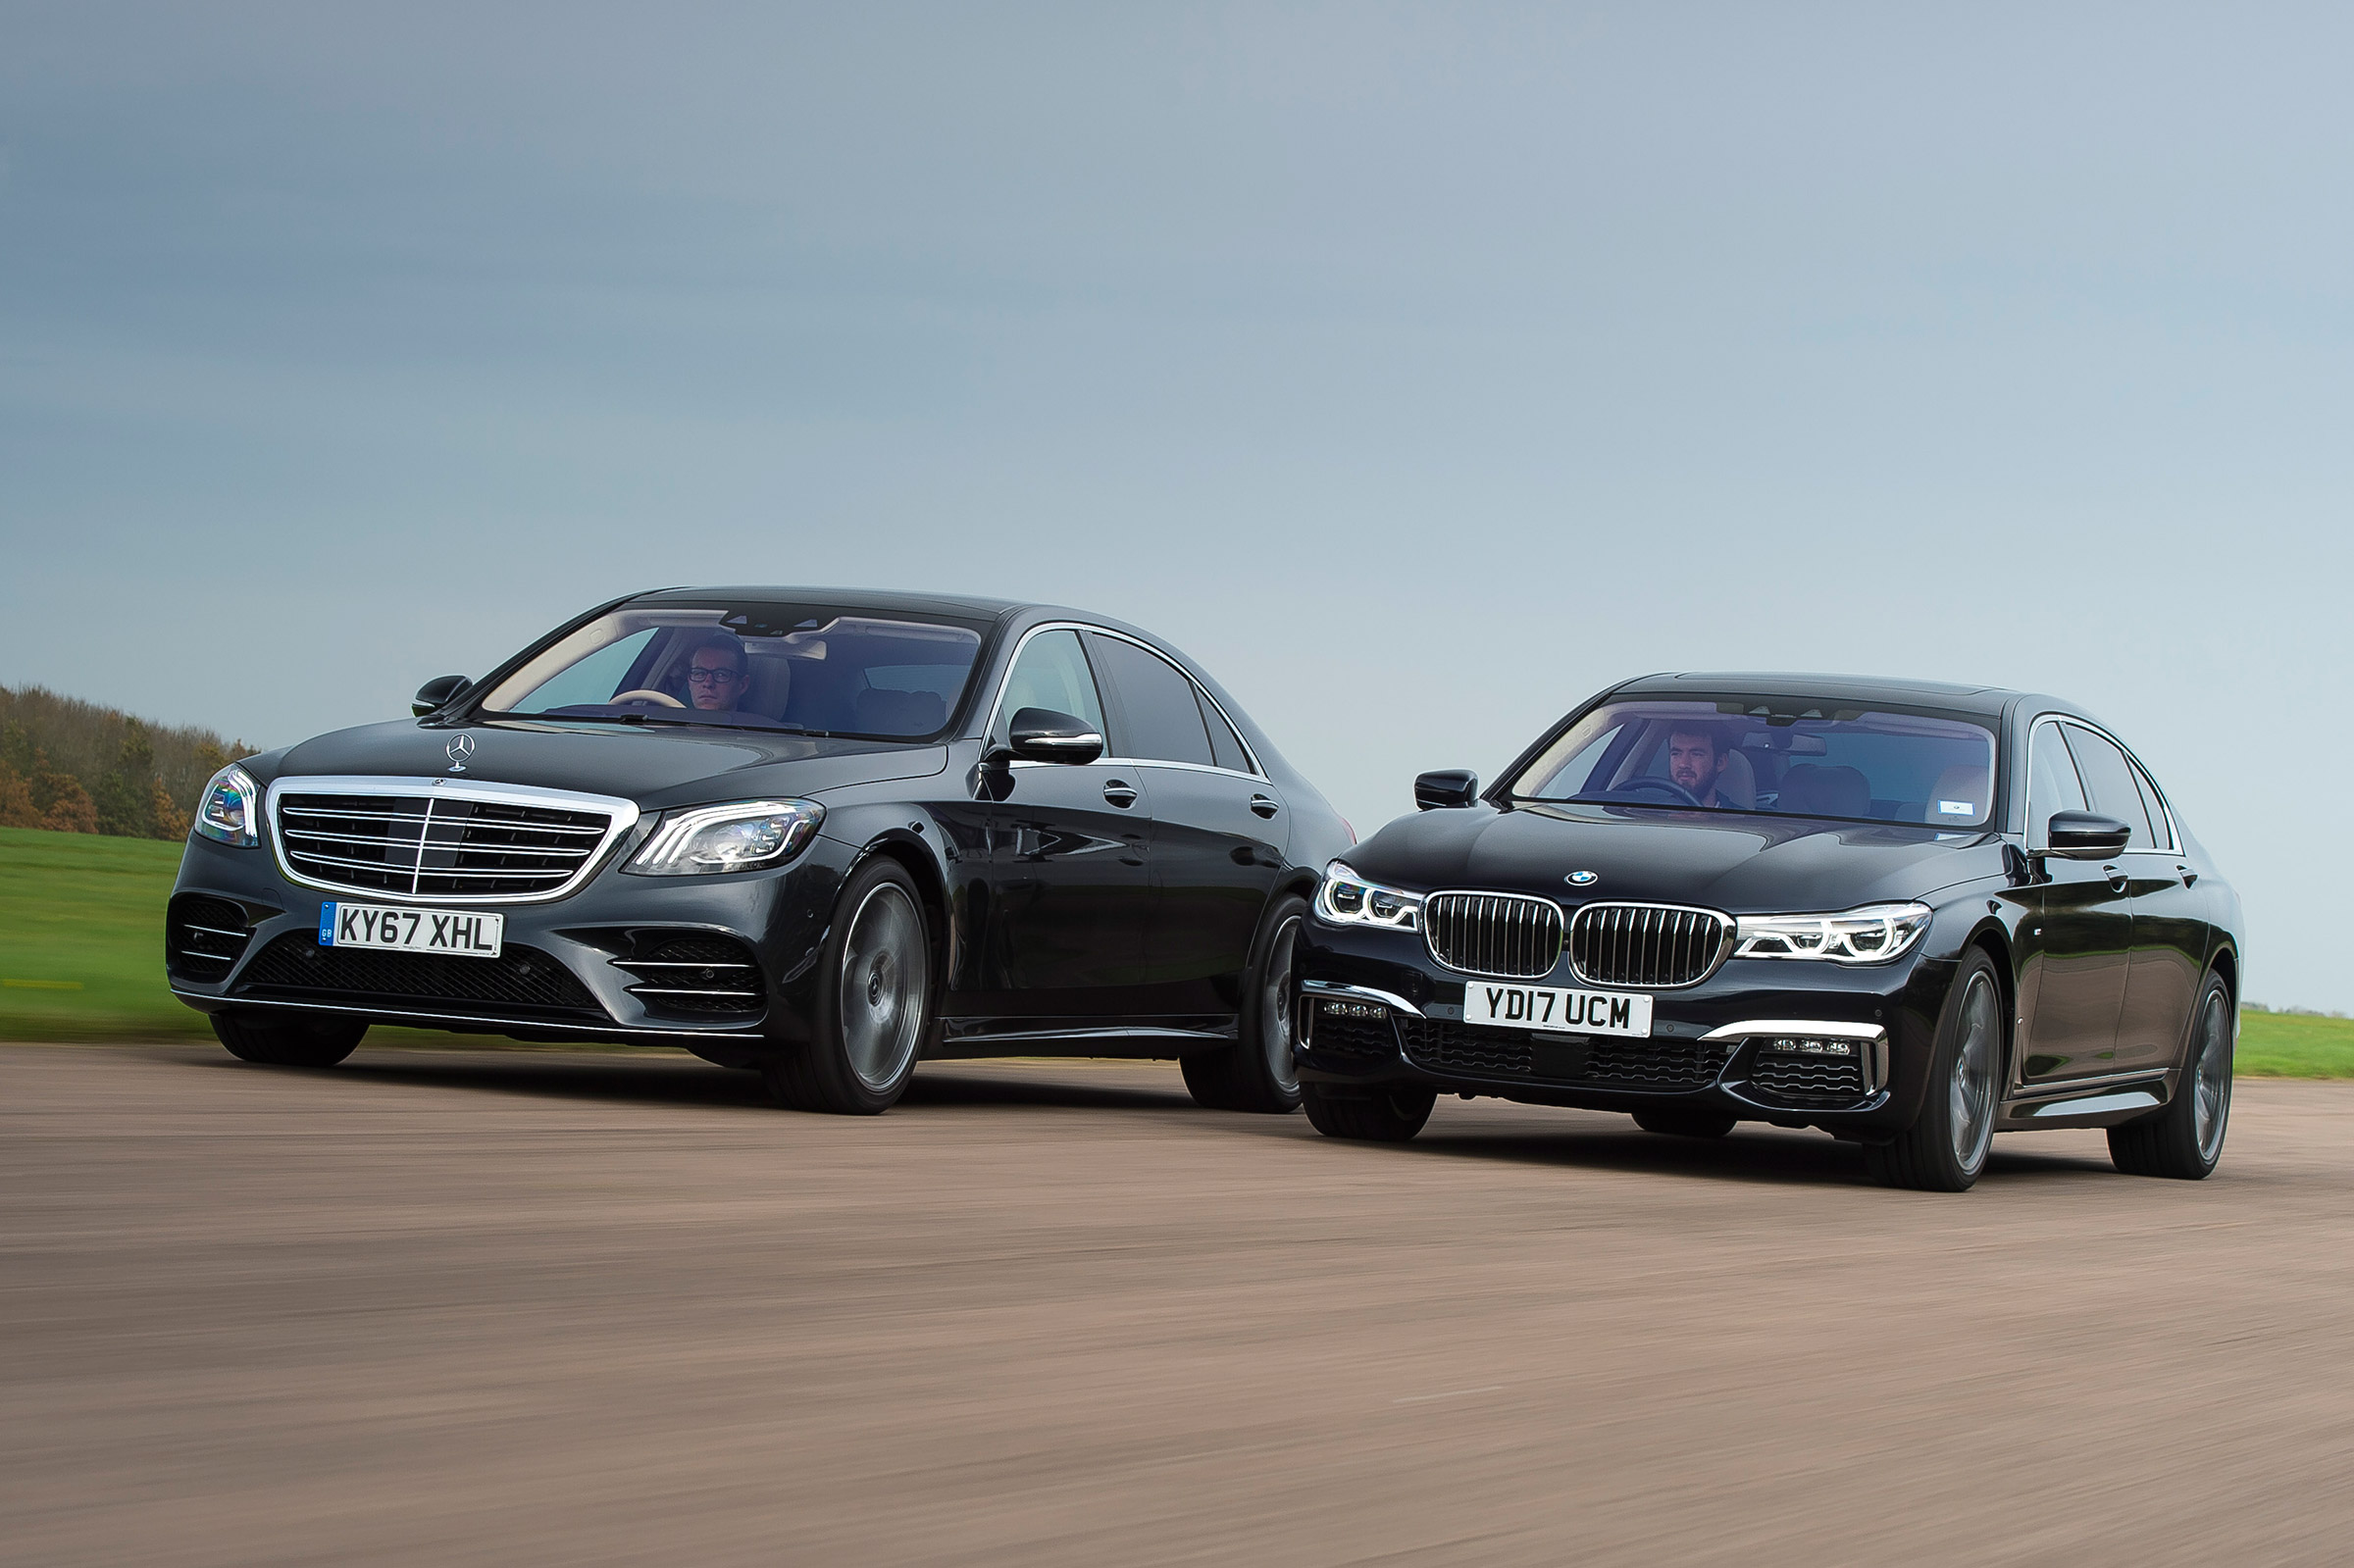 Bmw Vs Mercedes The Battle Of Luxury Brands Car From Japan